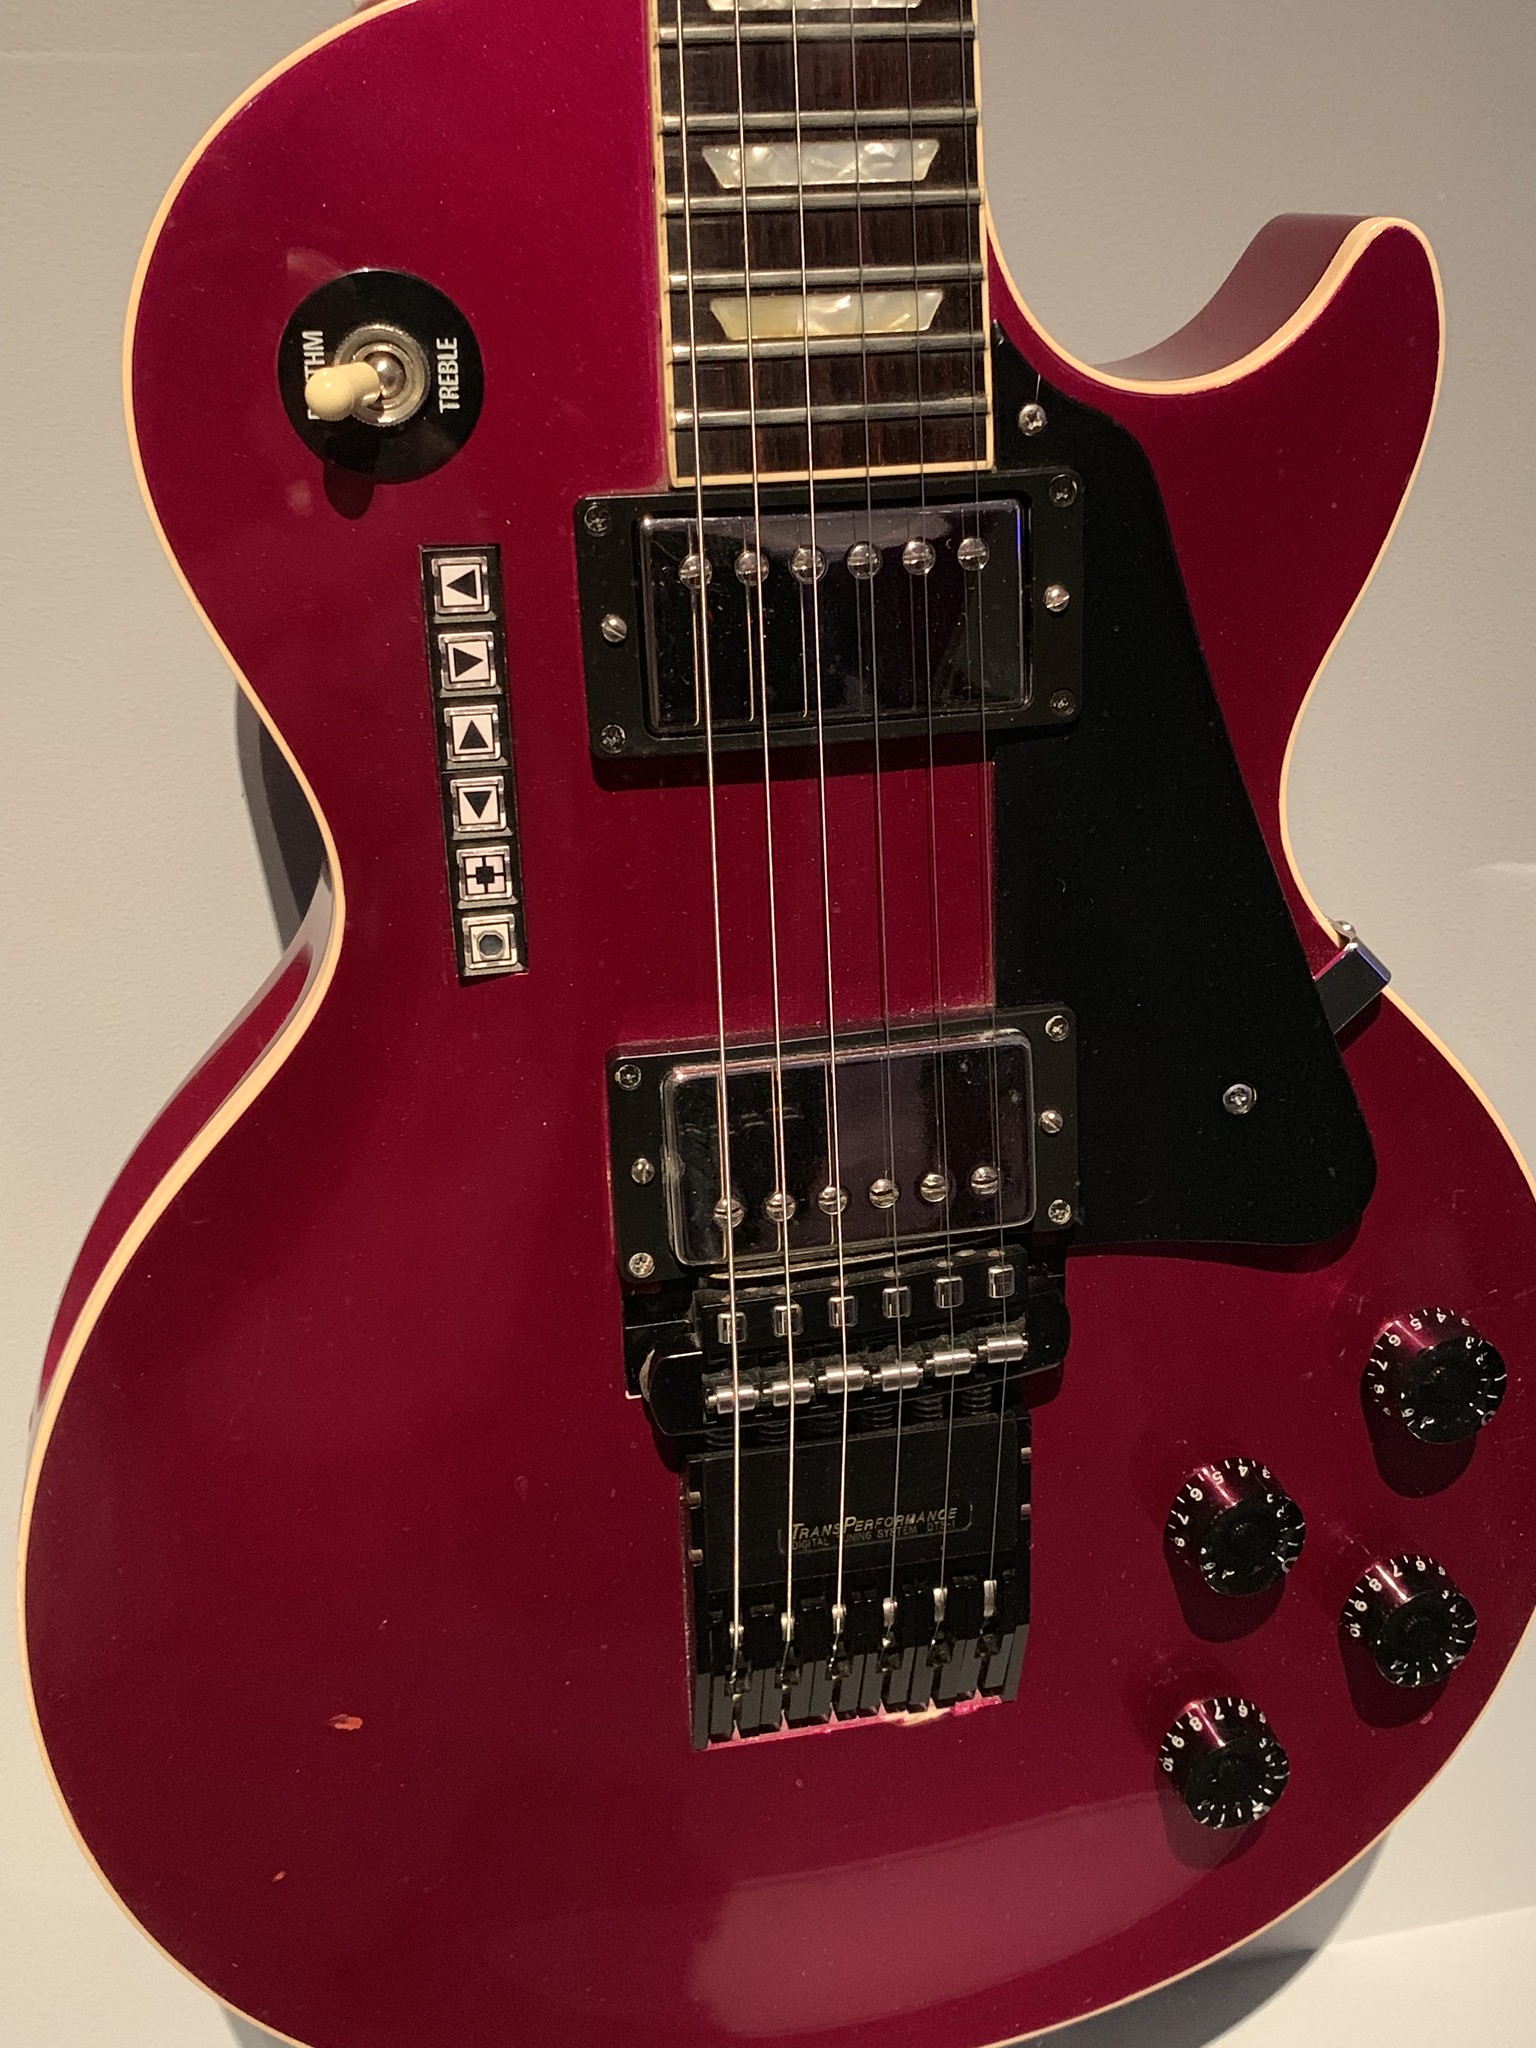 Jimmy Page - Gibson Les Paul TransPerformance